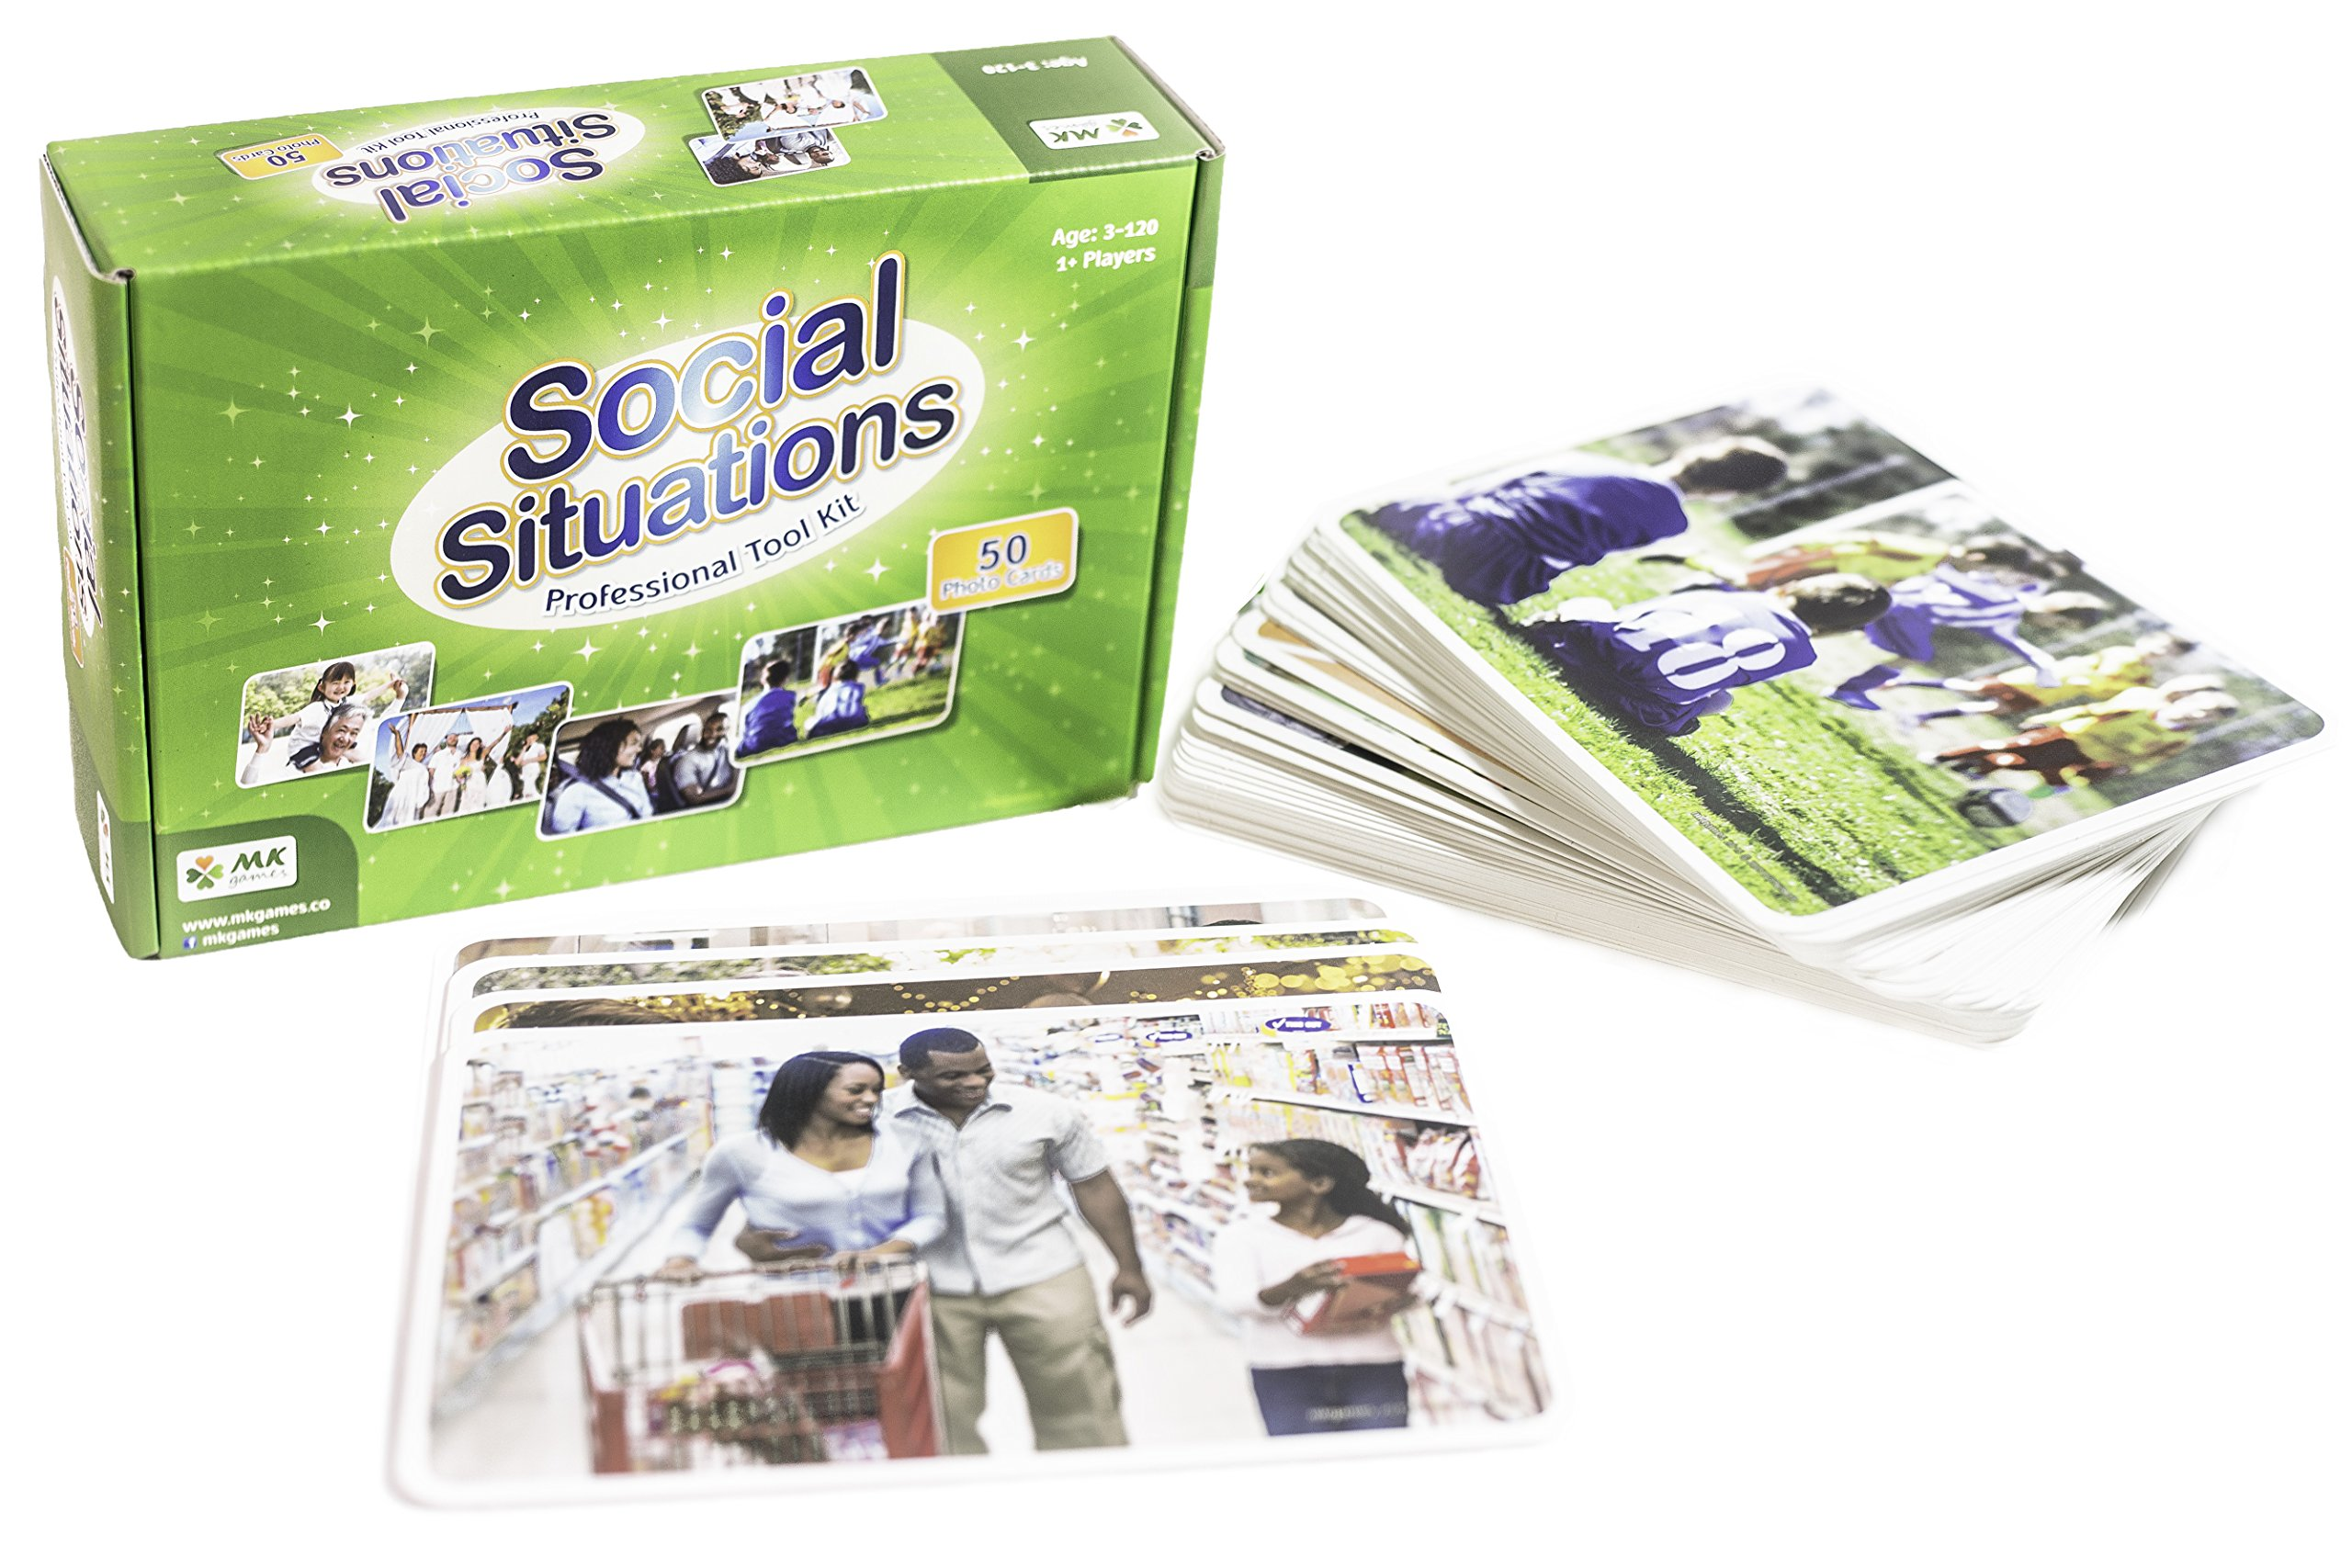 MKgames Social situations - 50 Photo Cards, Learning Products, Speech Therapy for Kids and Adults. Encourages Language Development, Communication and Conversation by MKgames